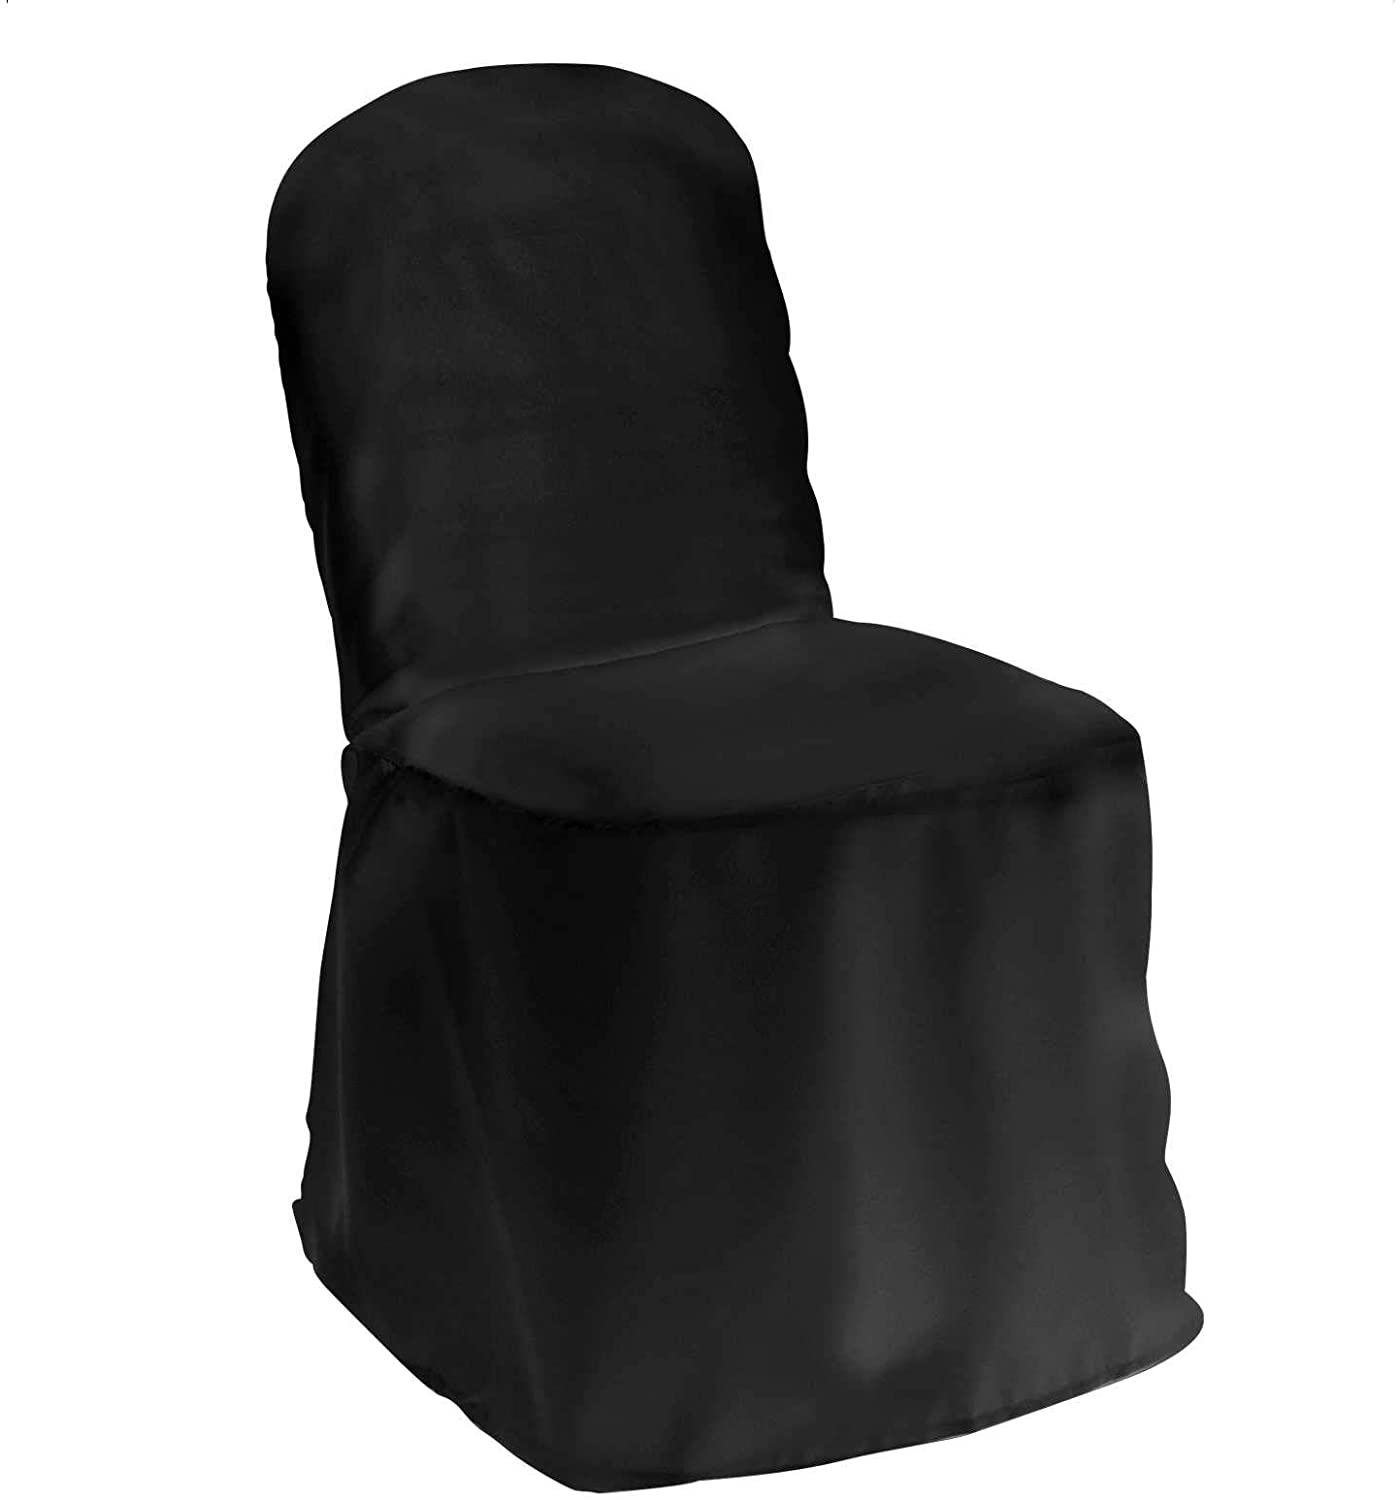 Lann's Linens - 10 Elegant Wedding/Party Banquet Chair Covers - Polyester Cloth - Black